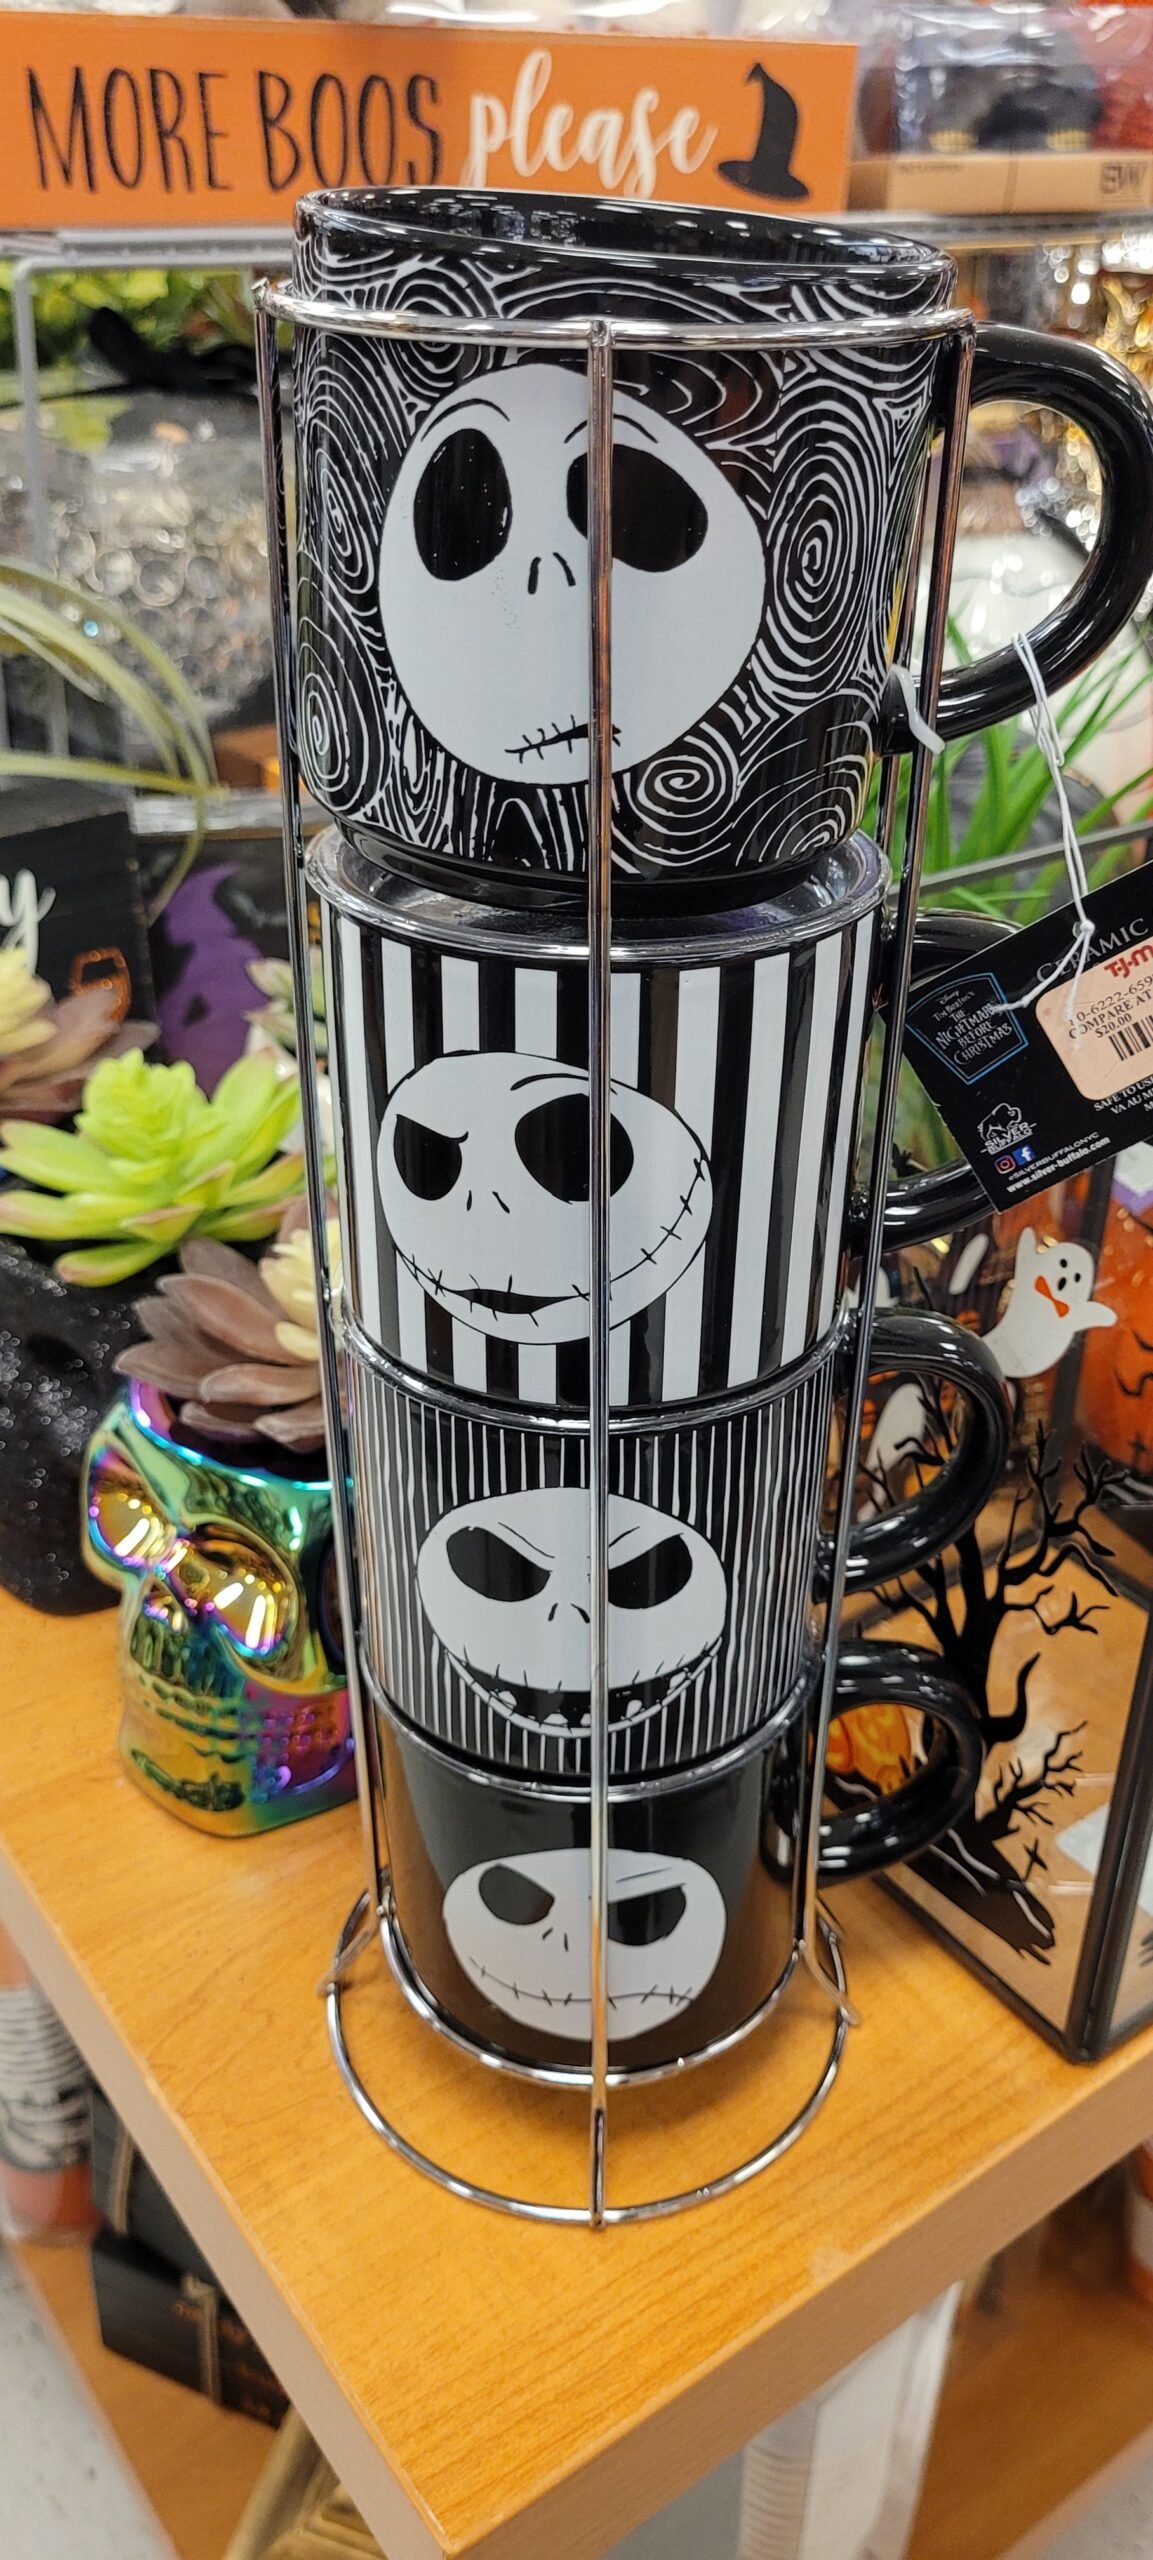 Disney Halloween Finds At Home Goods and TJ Maxx 2